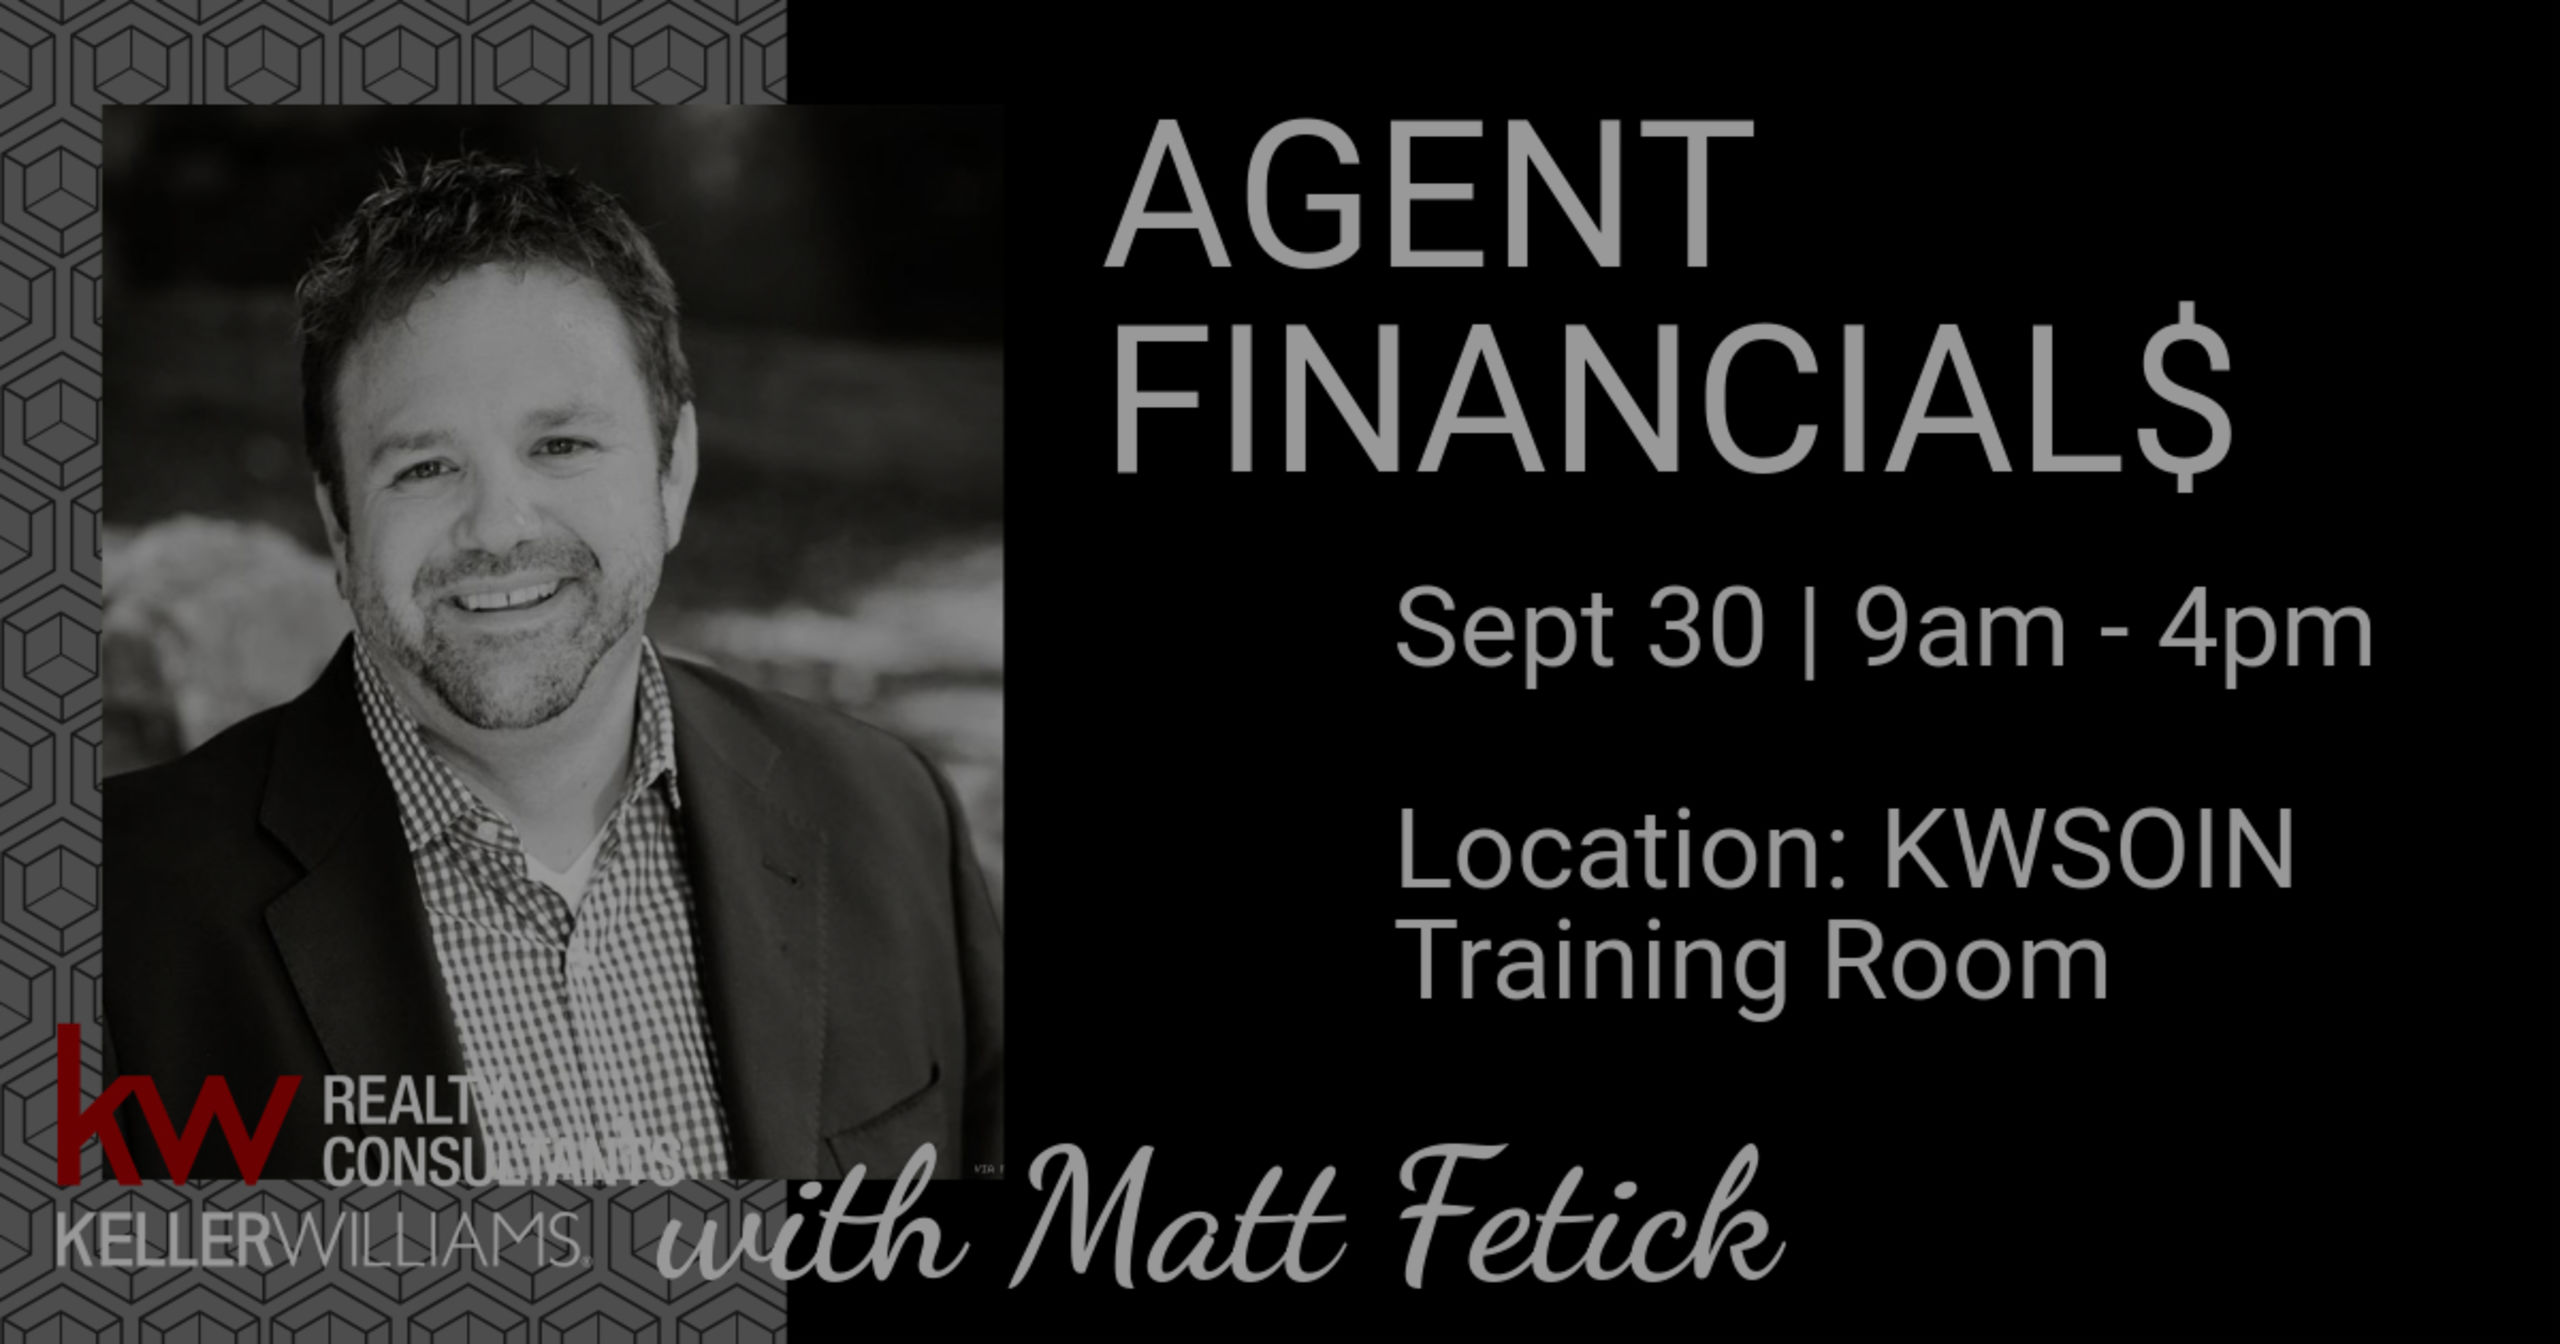 AGENT FINANCIAL$ with Matt Fetick